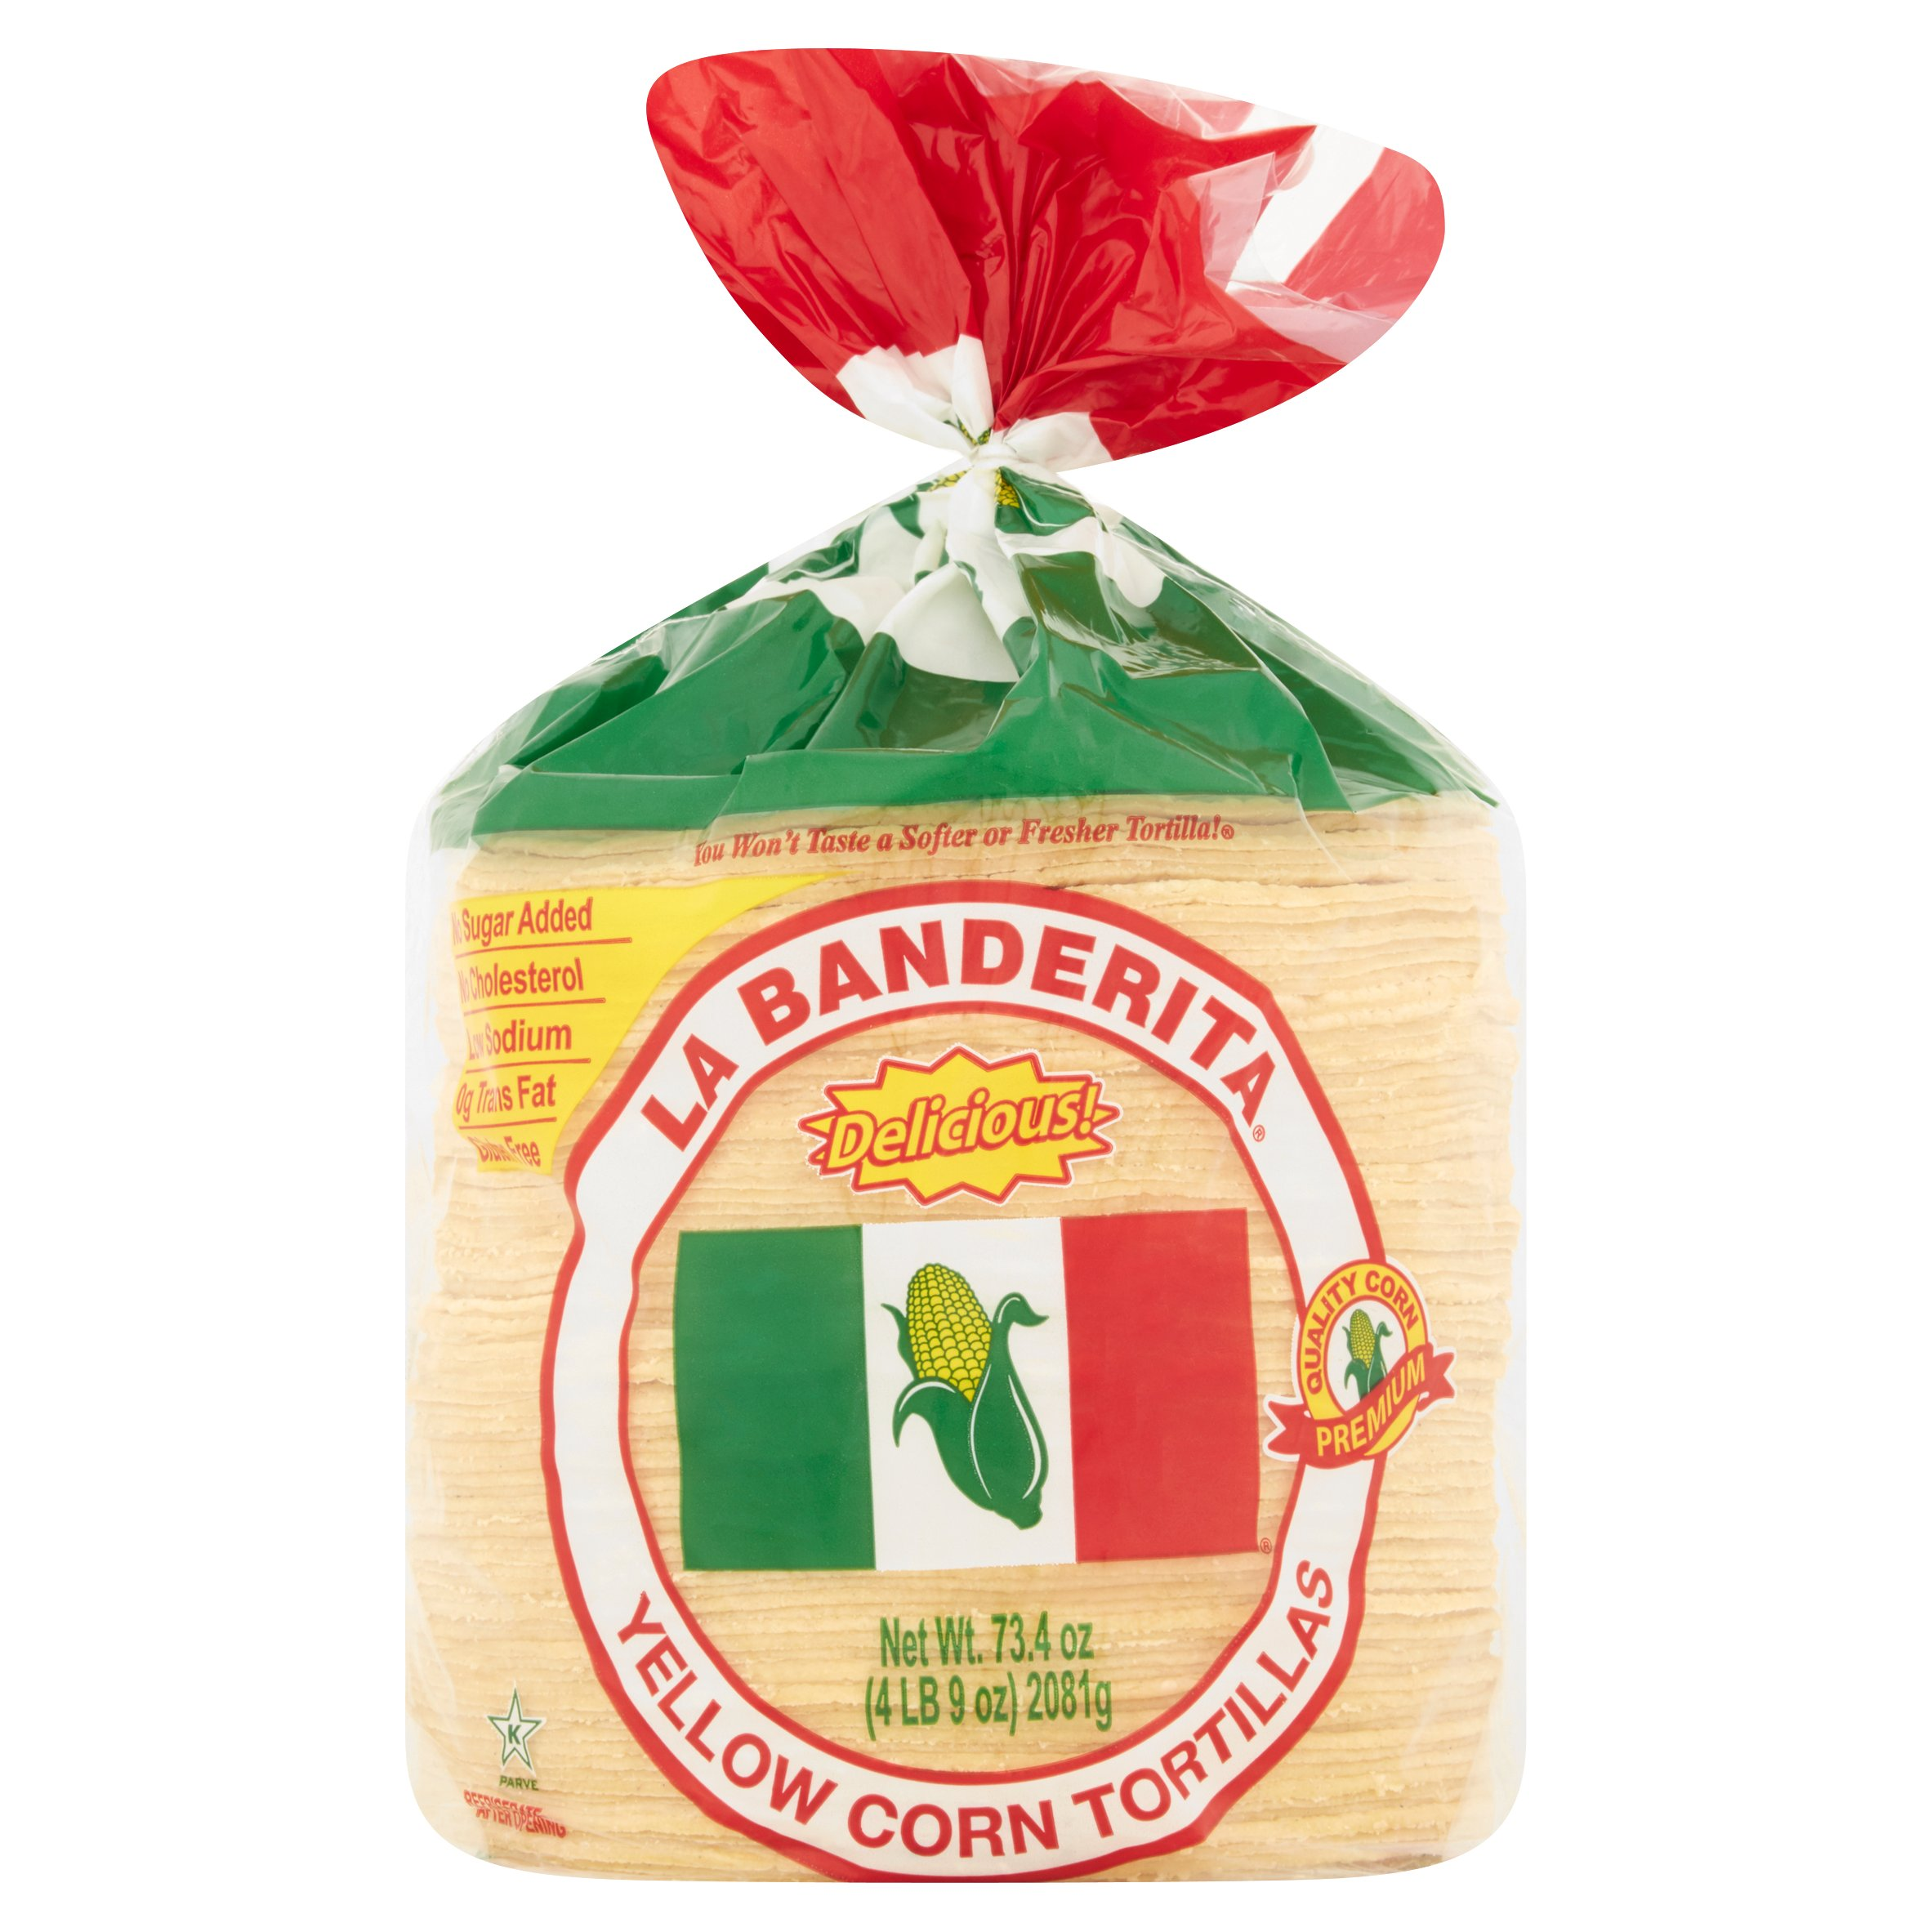 Ole Mexican La Banderita  Tortillas, 73.4 oz